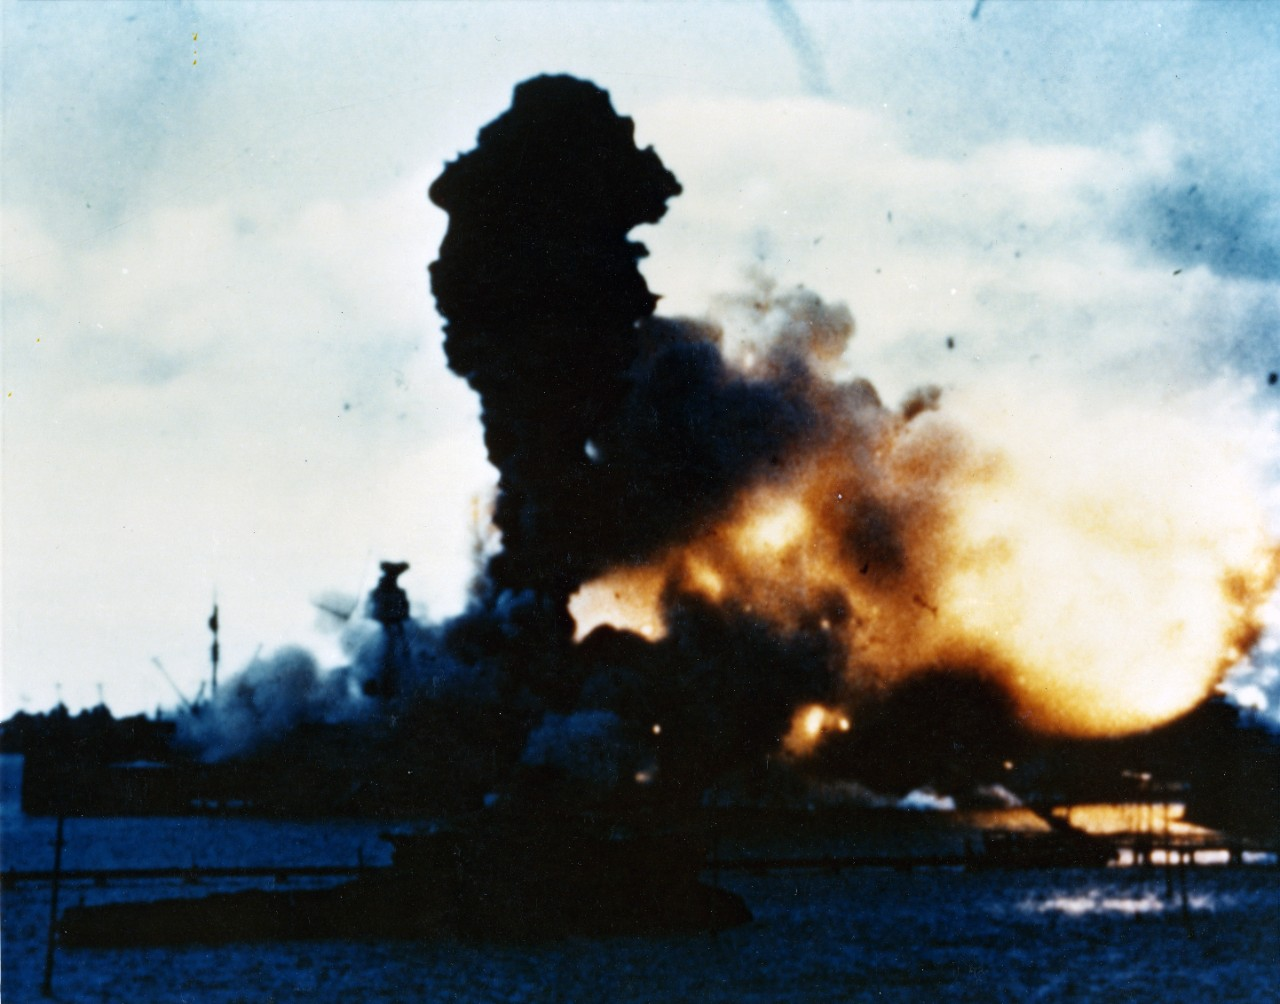 Color Photo of an explosion engulfing battleship USS Arizona (BB-39) with debris flying in the air.